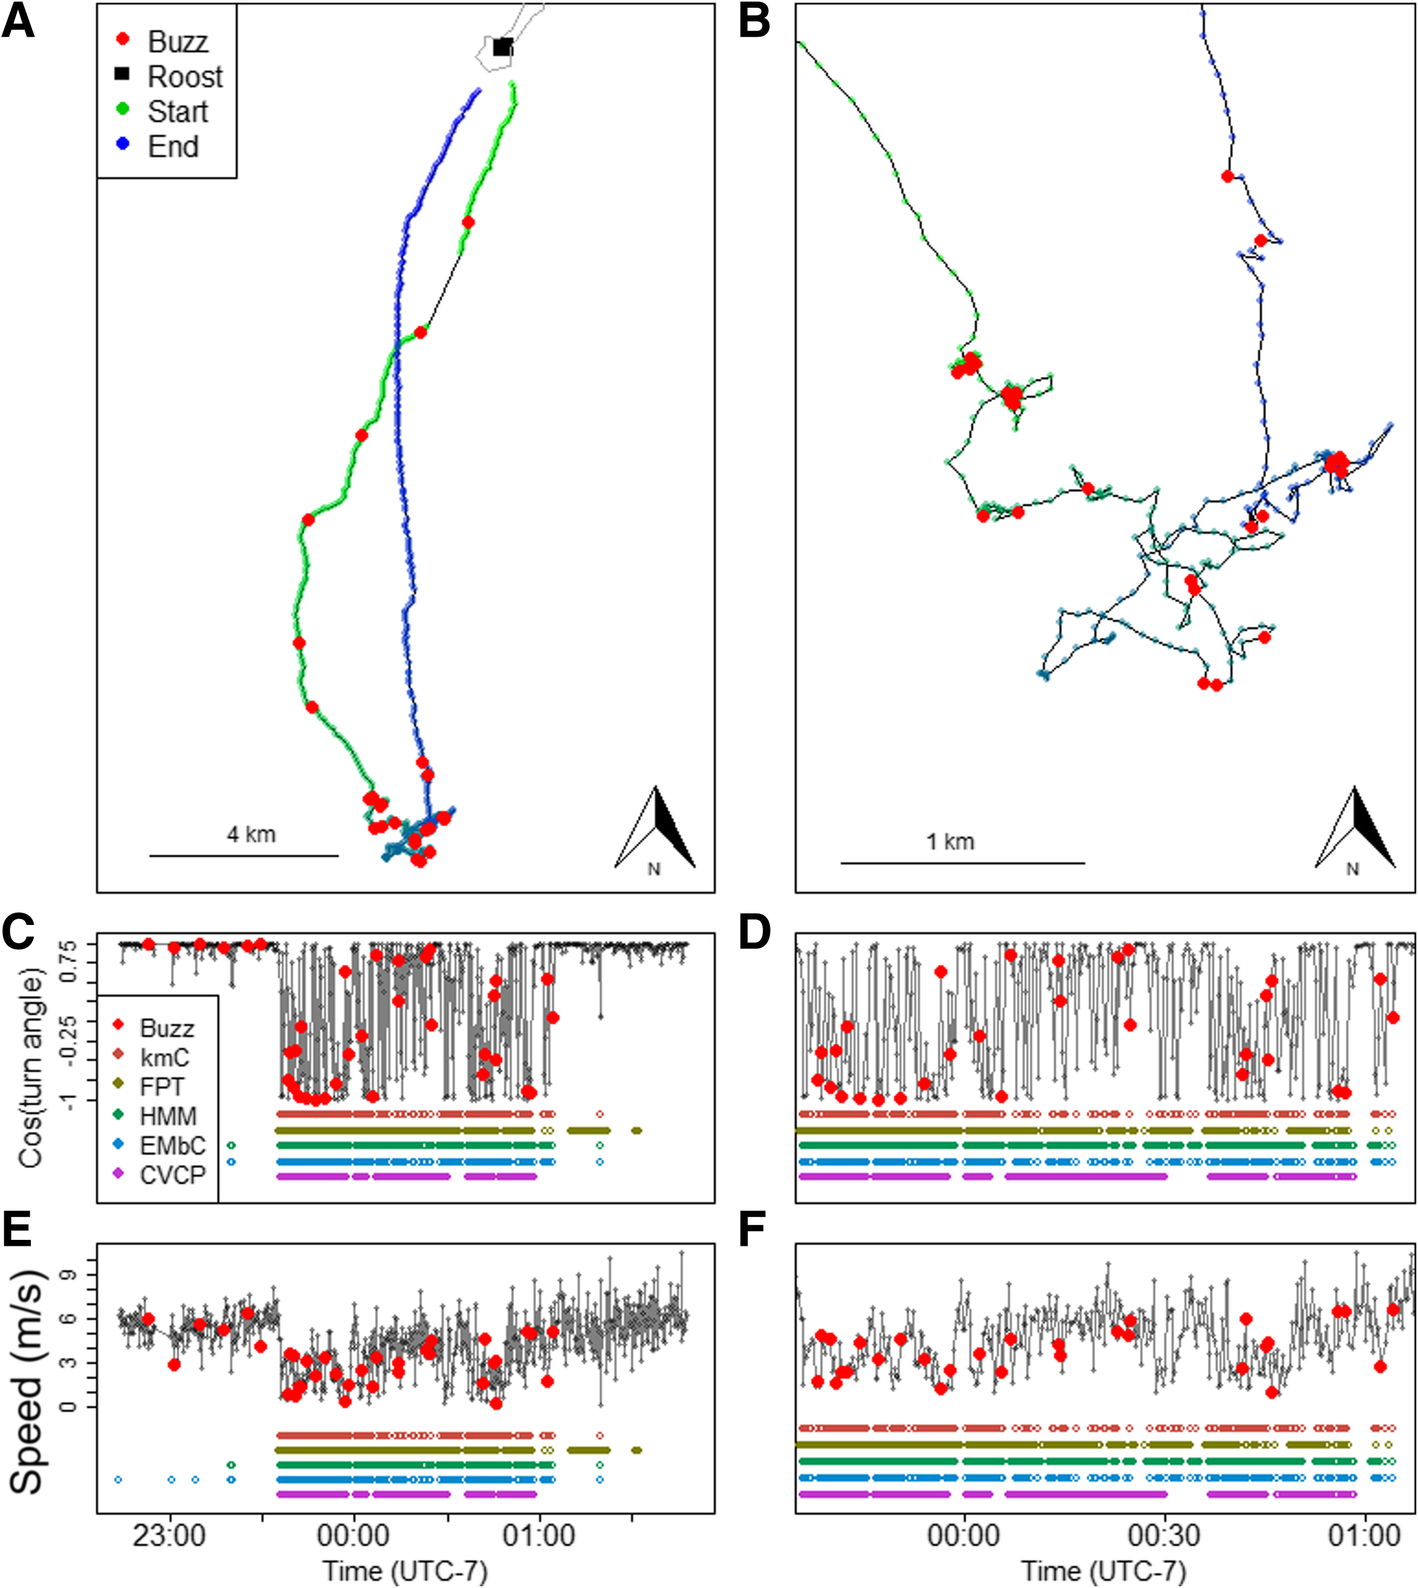 Acoustic evaluation of behavioral states predicted from GPS